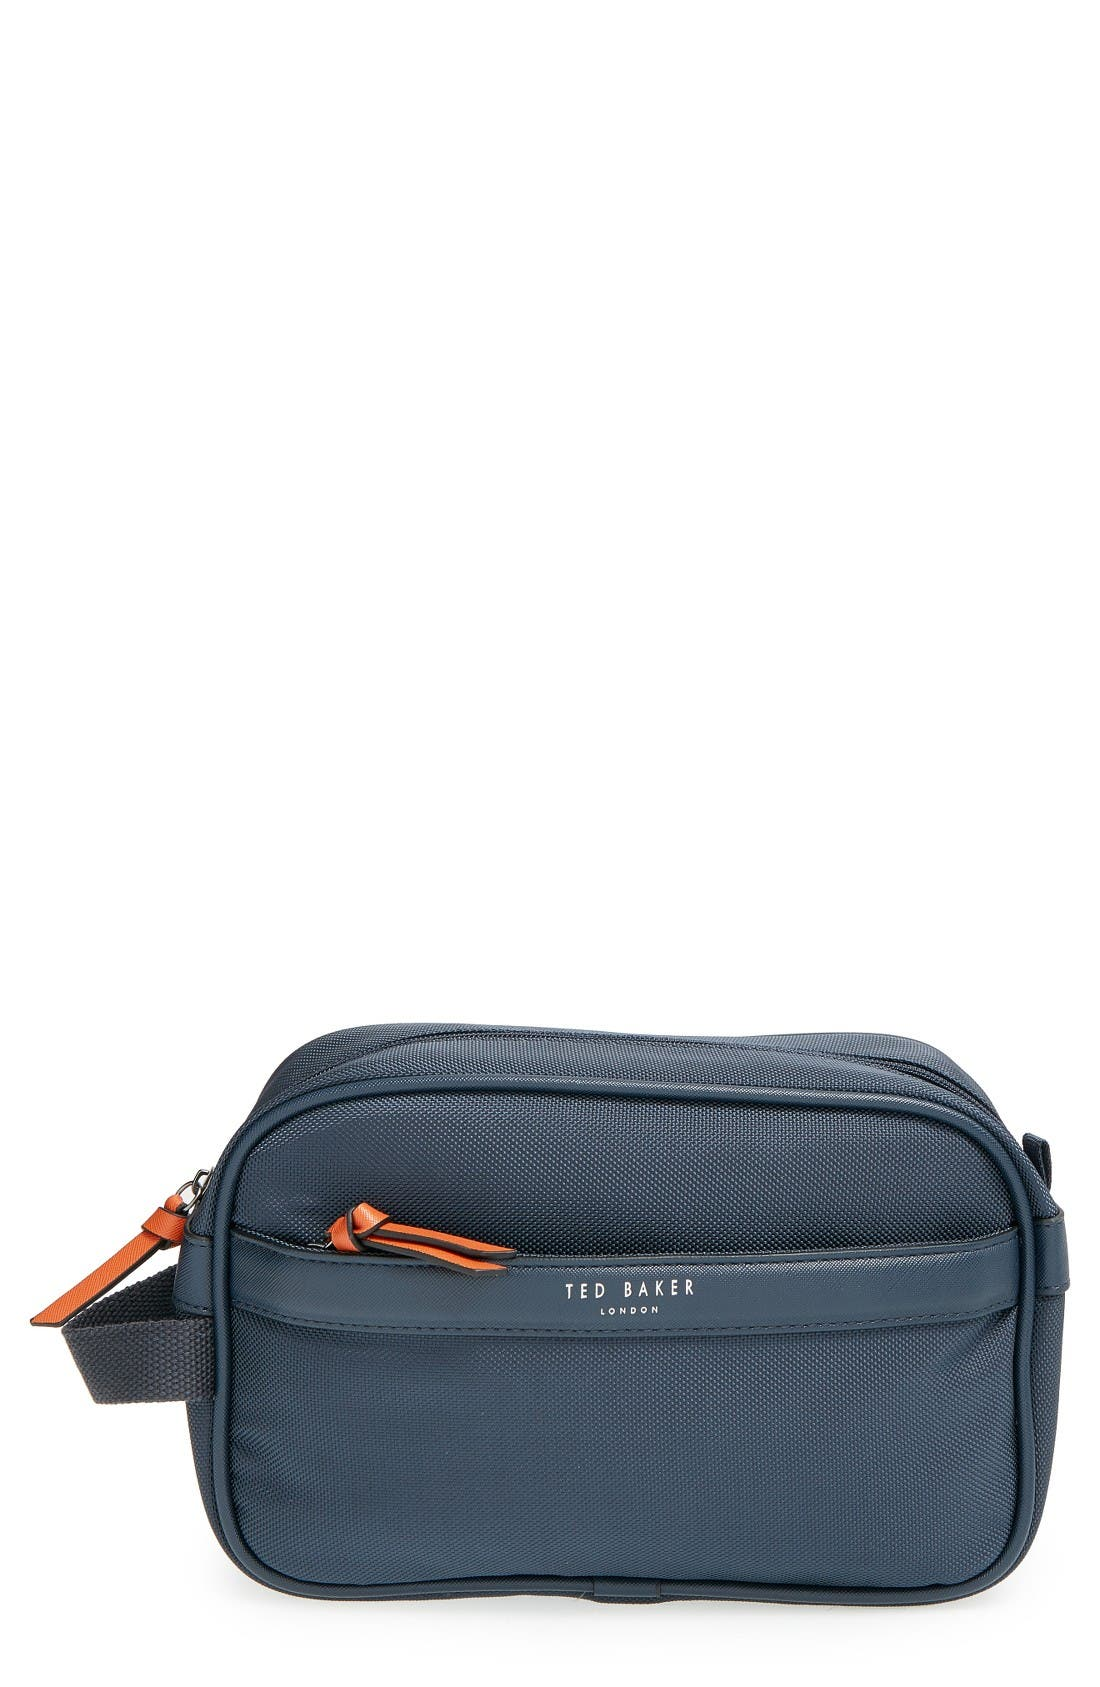 Ted Baker London Granula Travel Kit